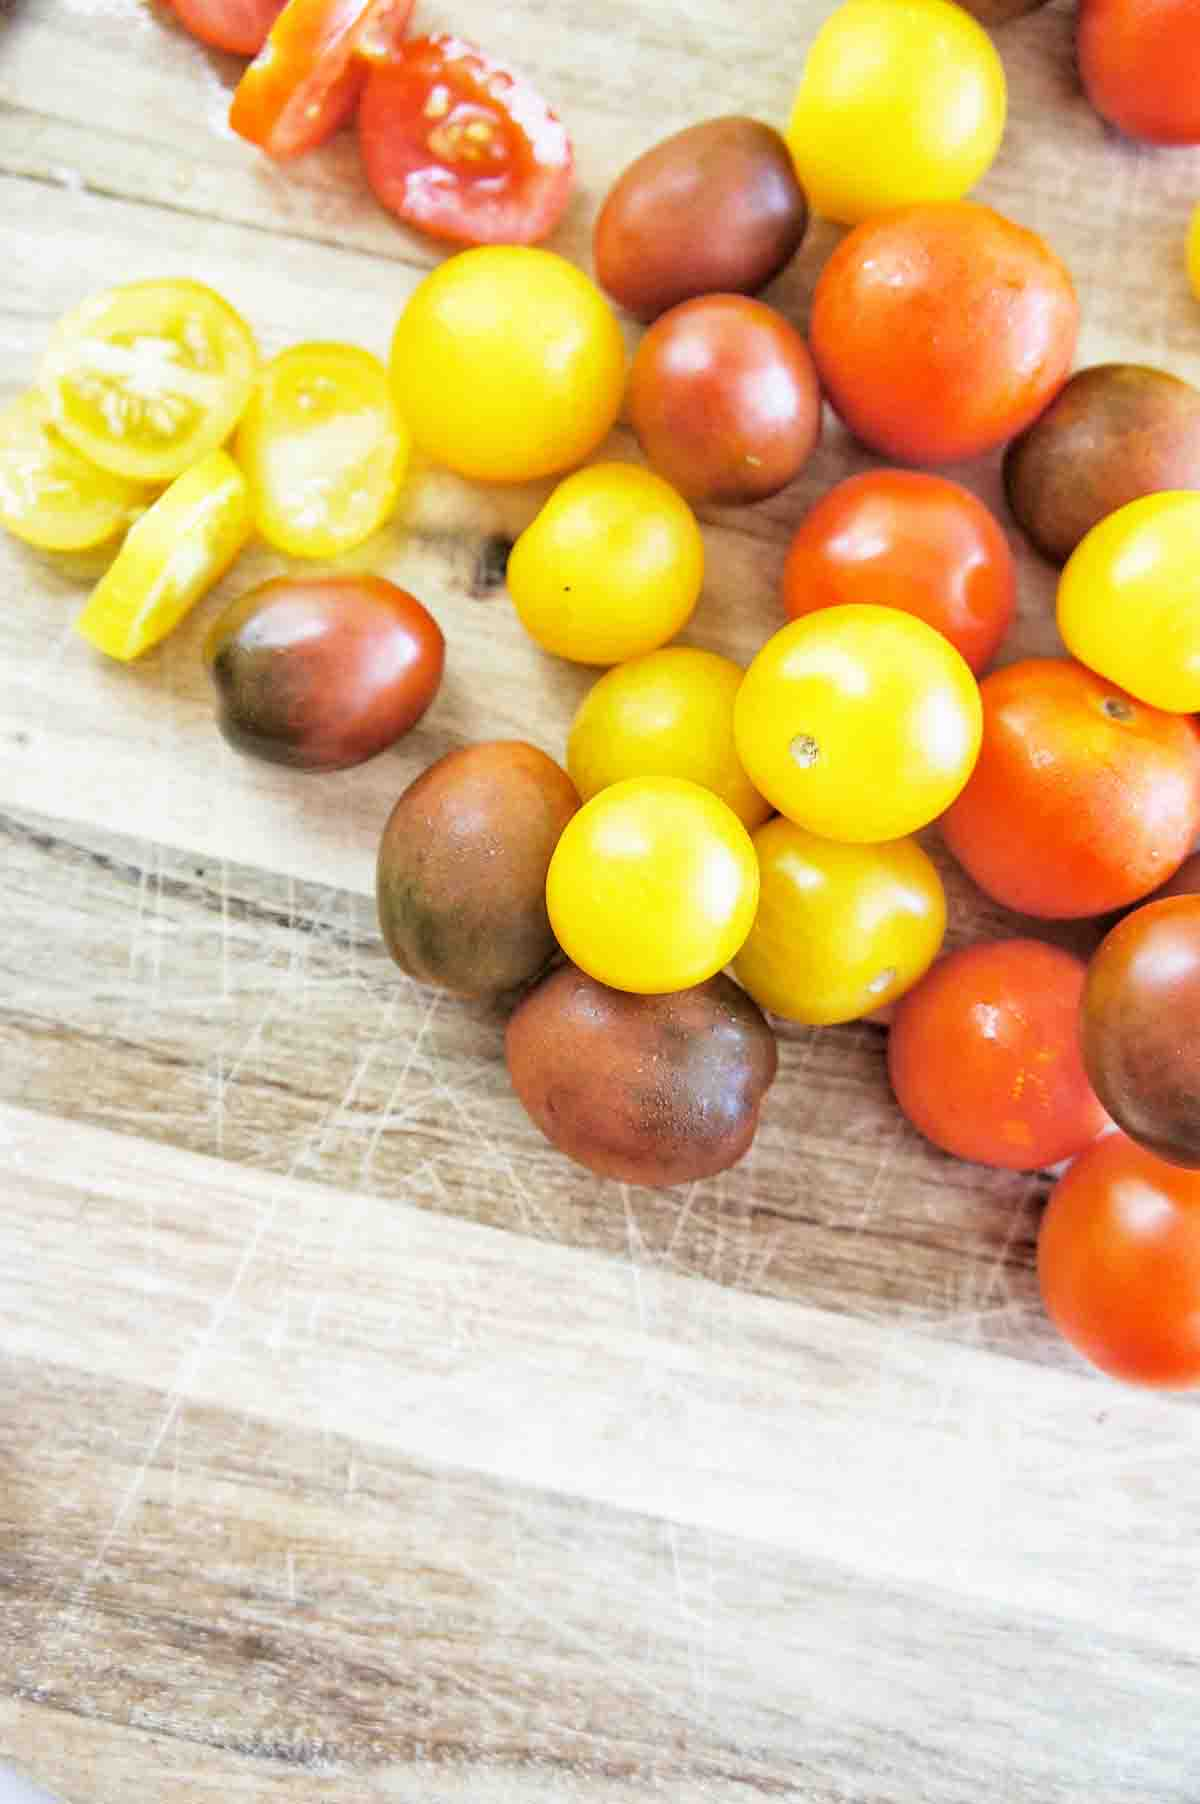 Heirloom tomatoes on a wooden chopping board